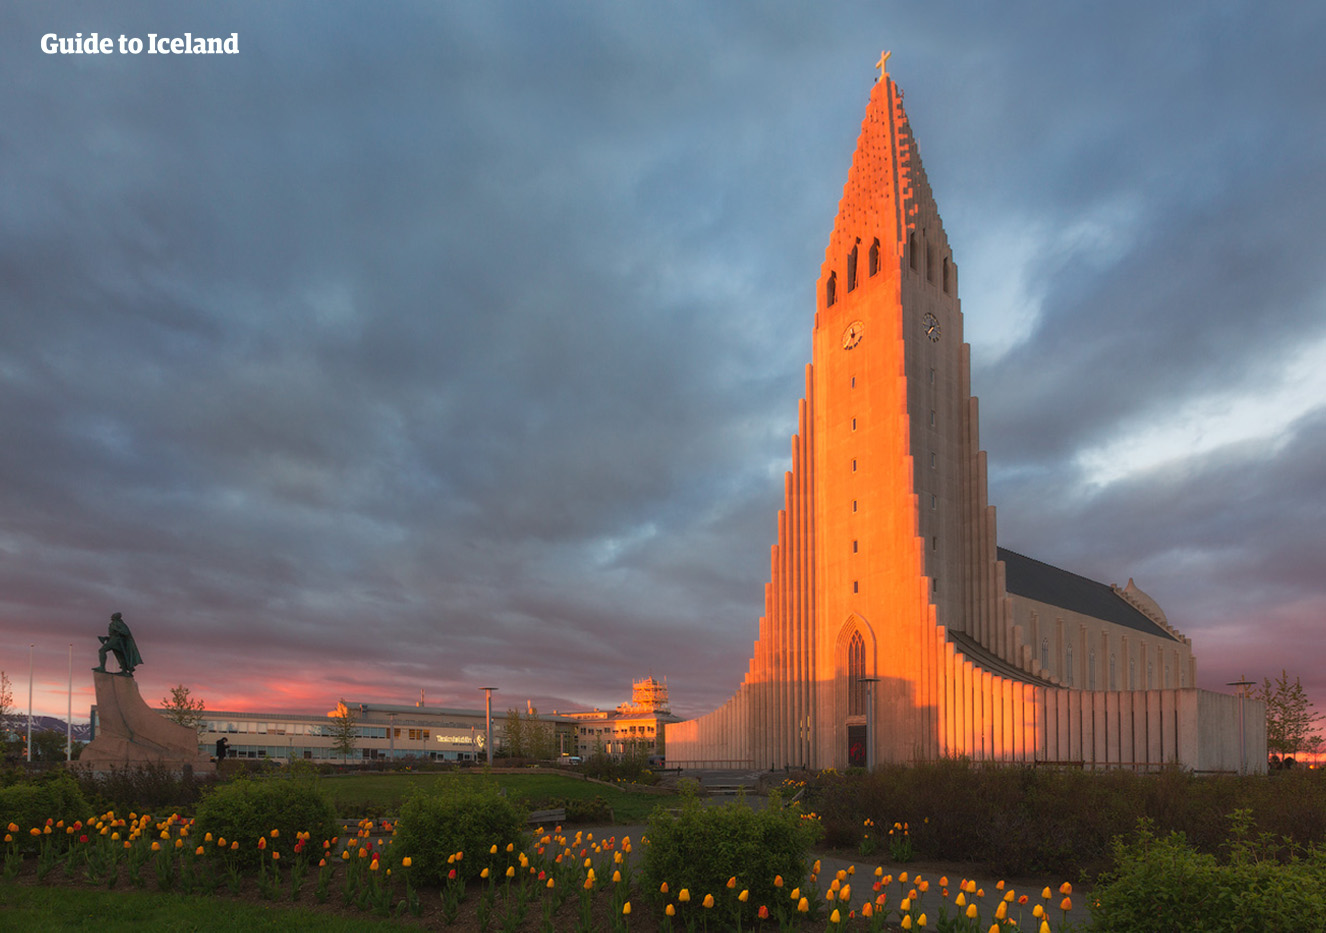 Hallgrímskirkja is the iconic church of Iceland's capital city, Reykjavík.